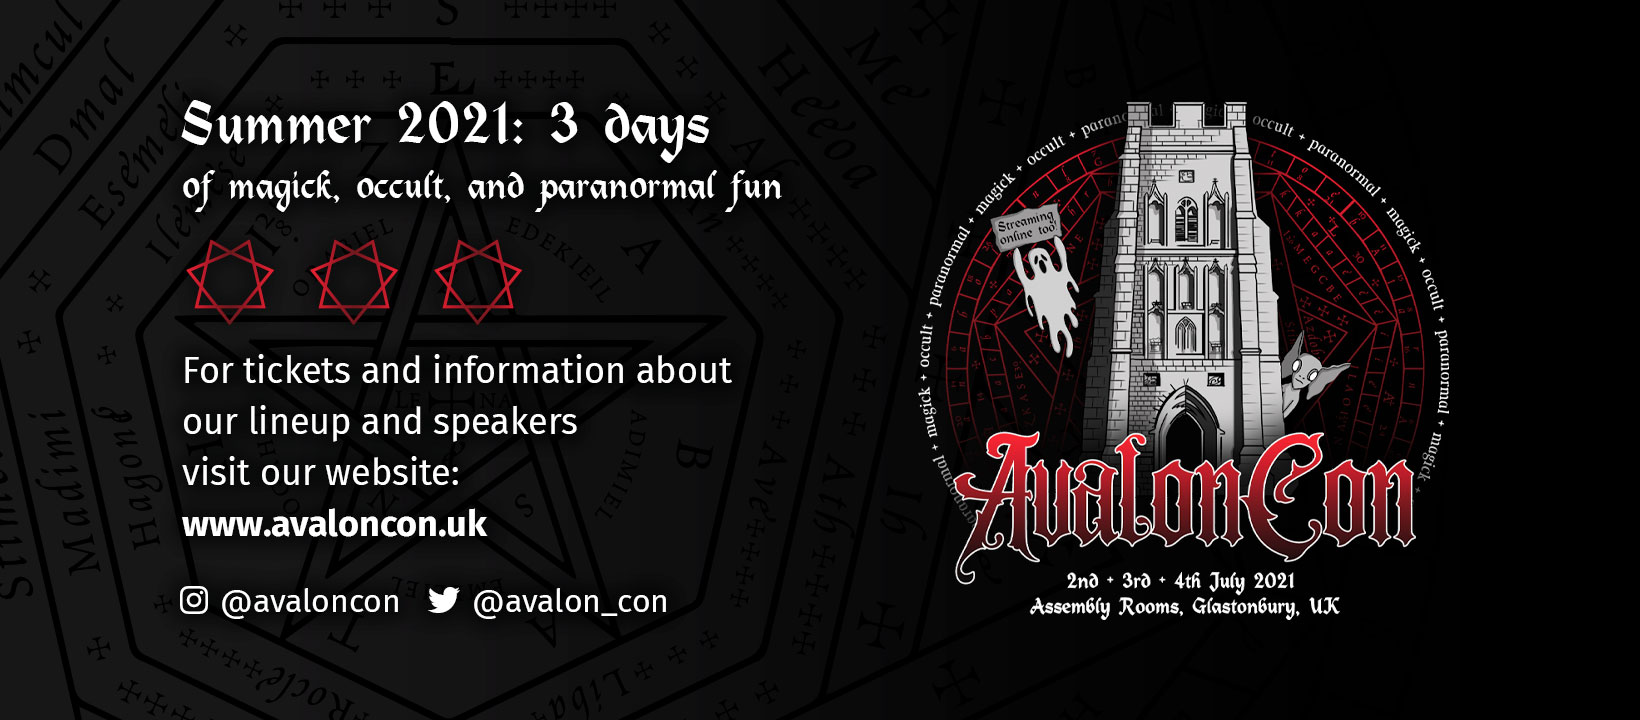 A banner I designed for AvalonCon's Facebook profile.